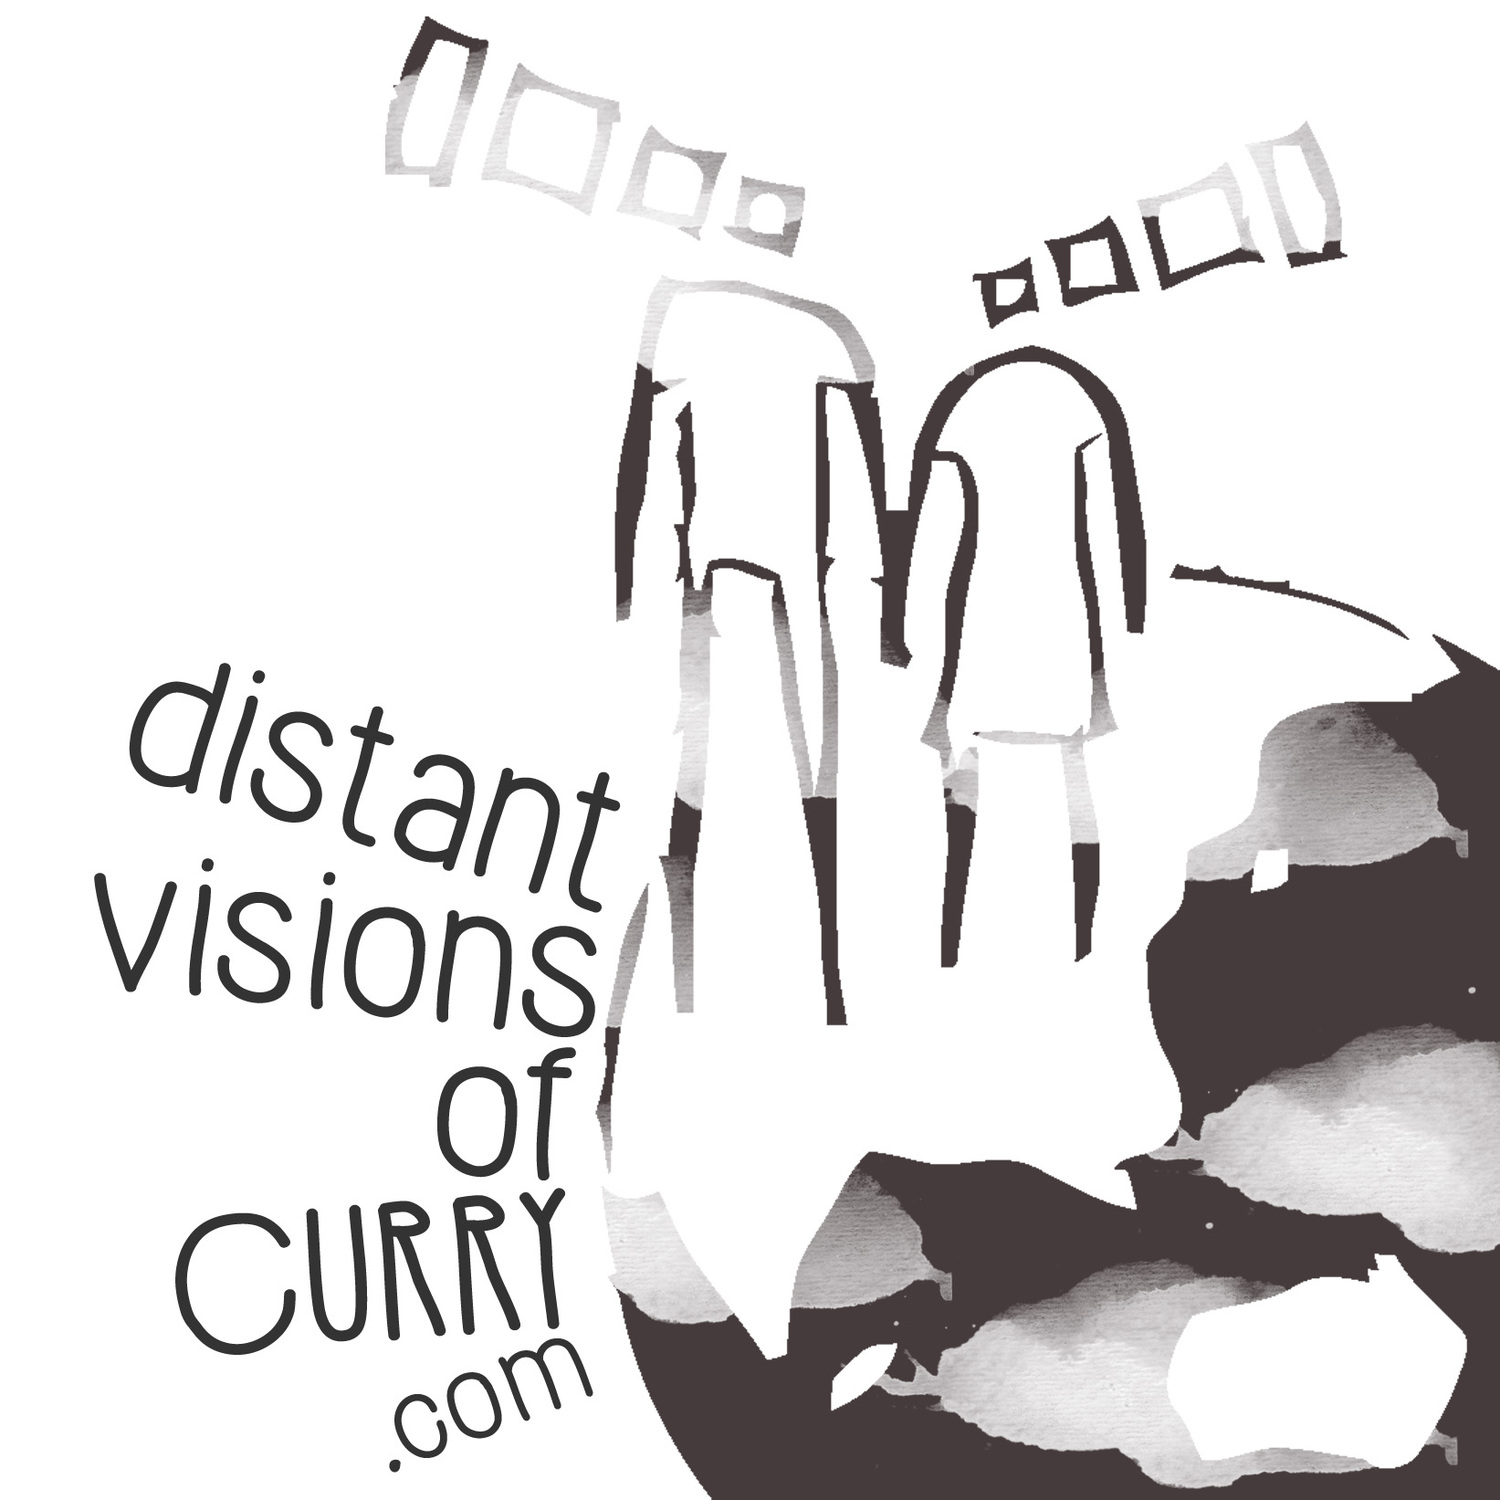 distant visions of CURRY